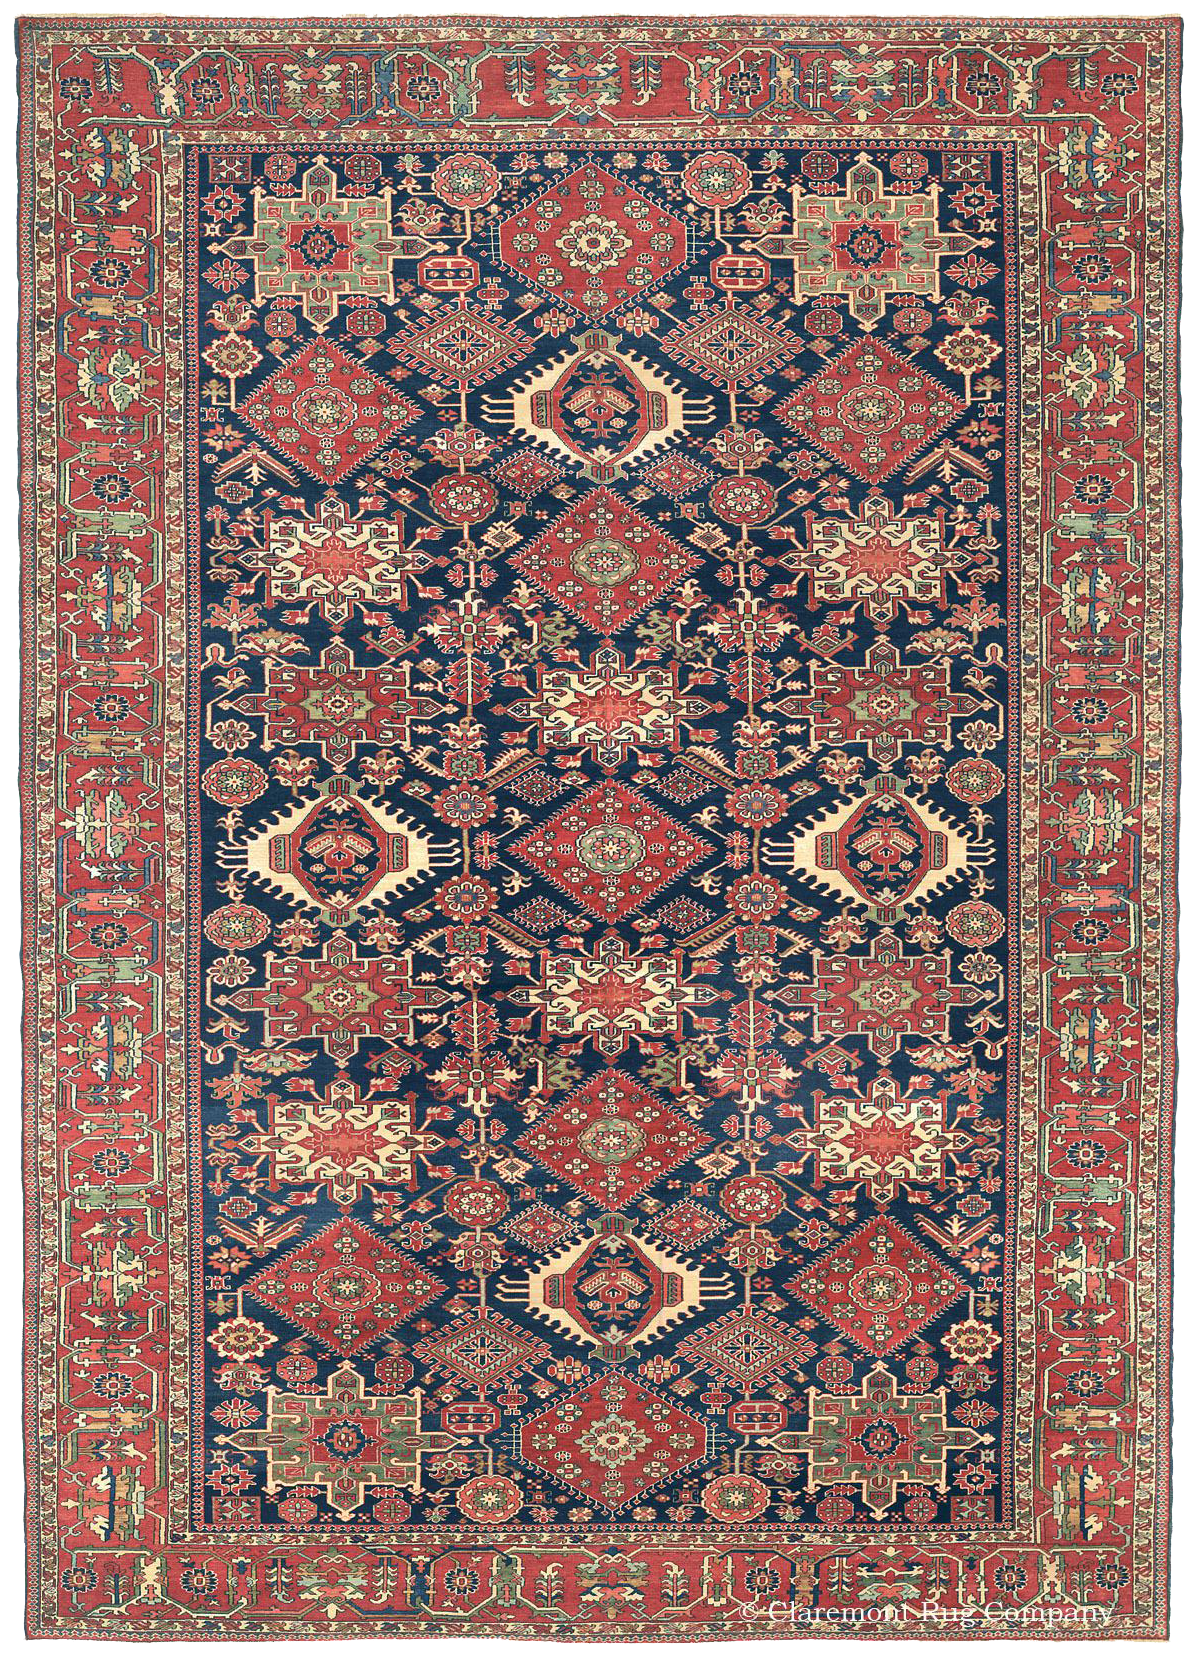 Learn More About This Northwest Persian Karaja Rug Antique Rugs In The Village Tradition Claremont Company